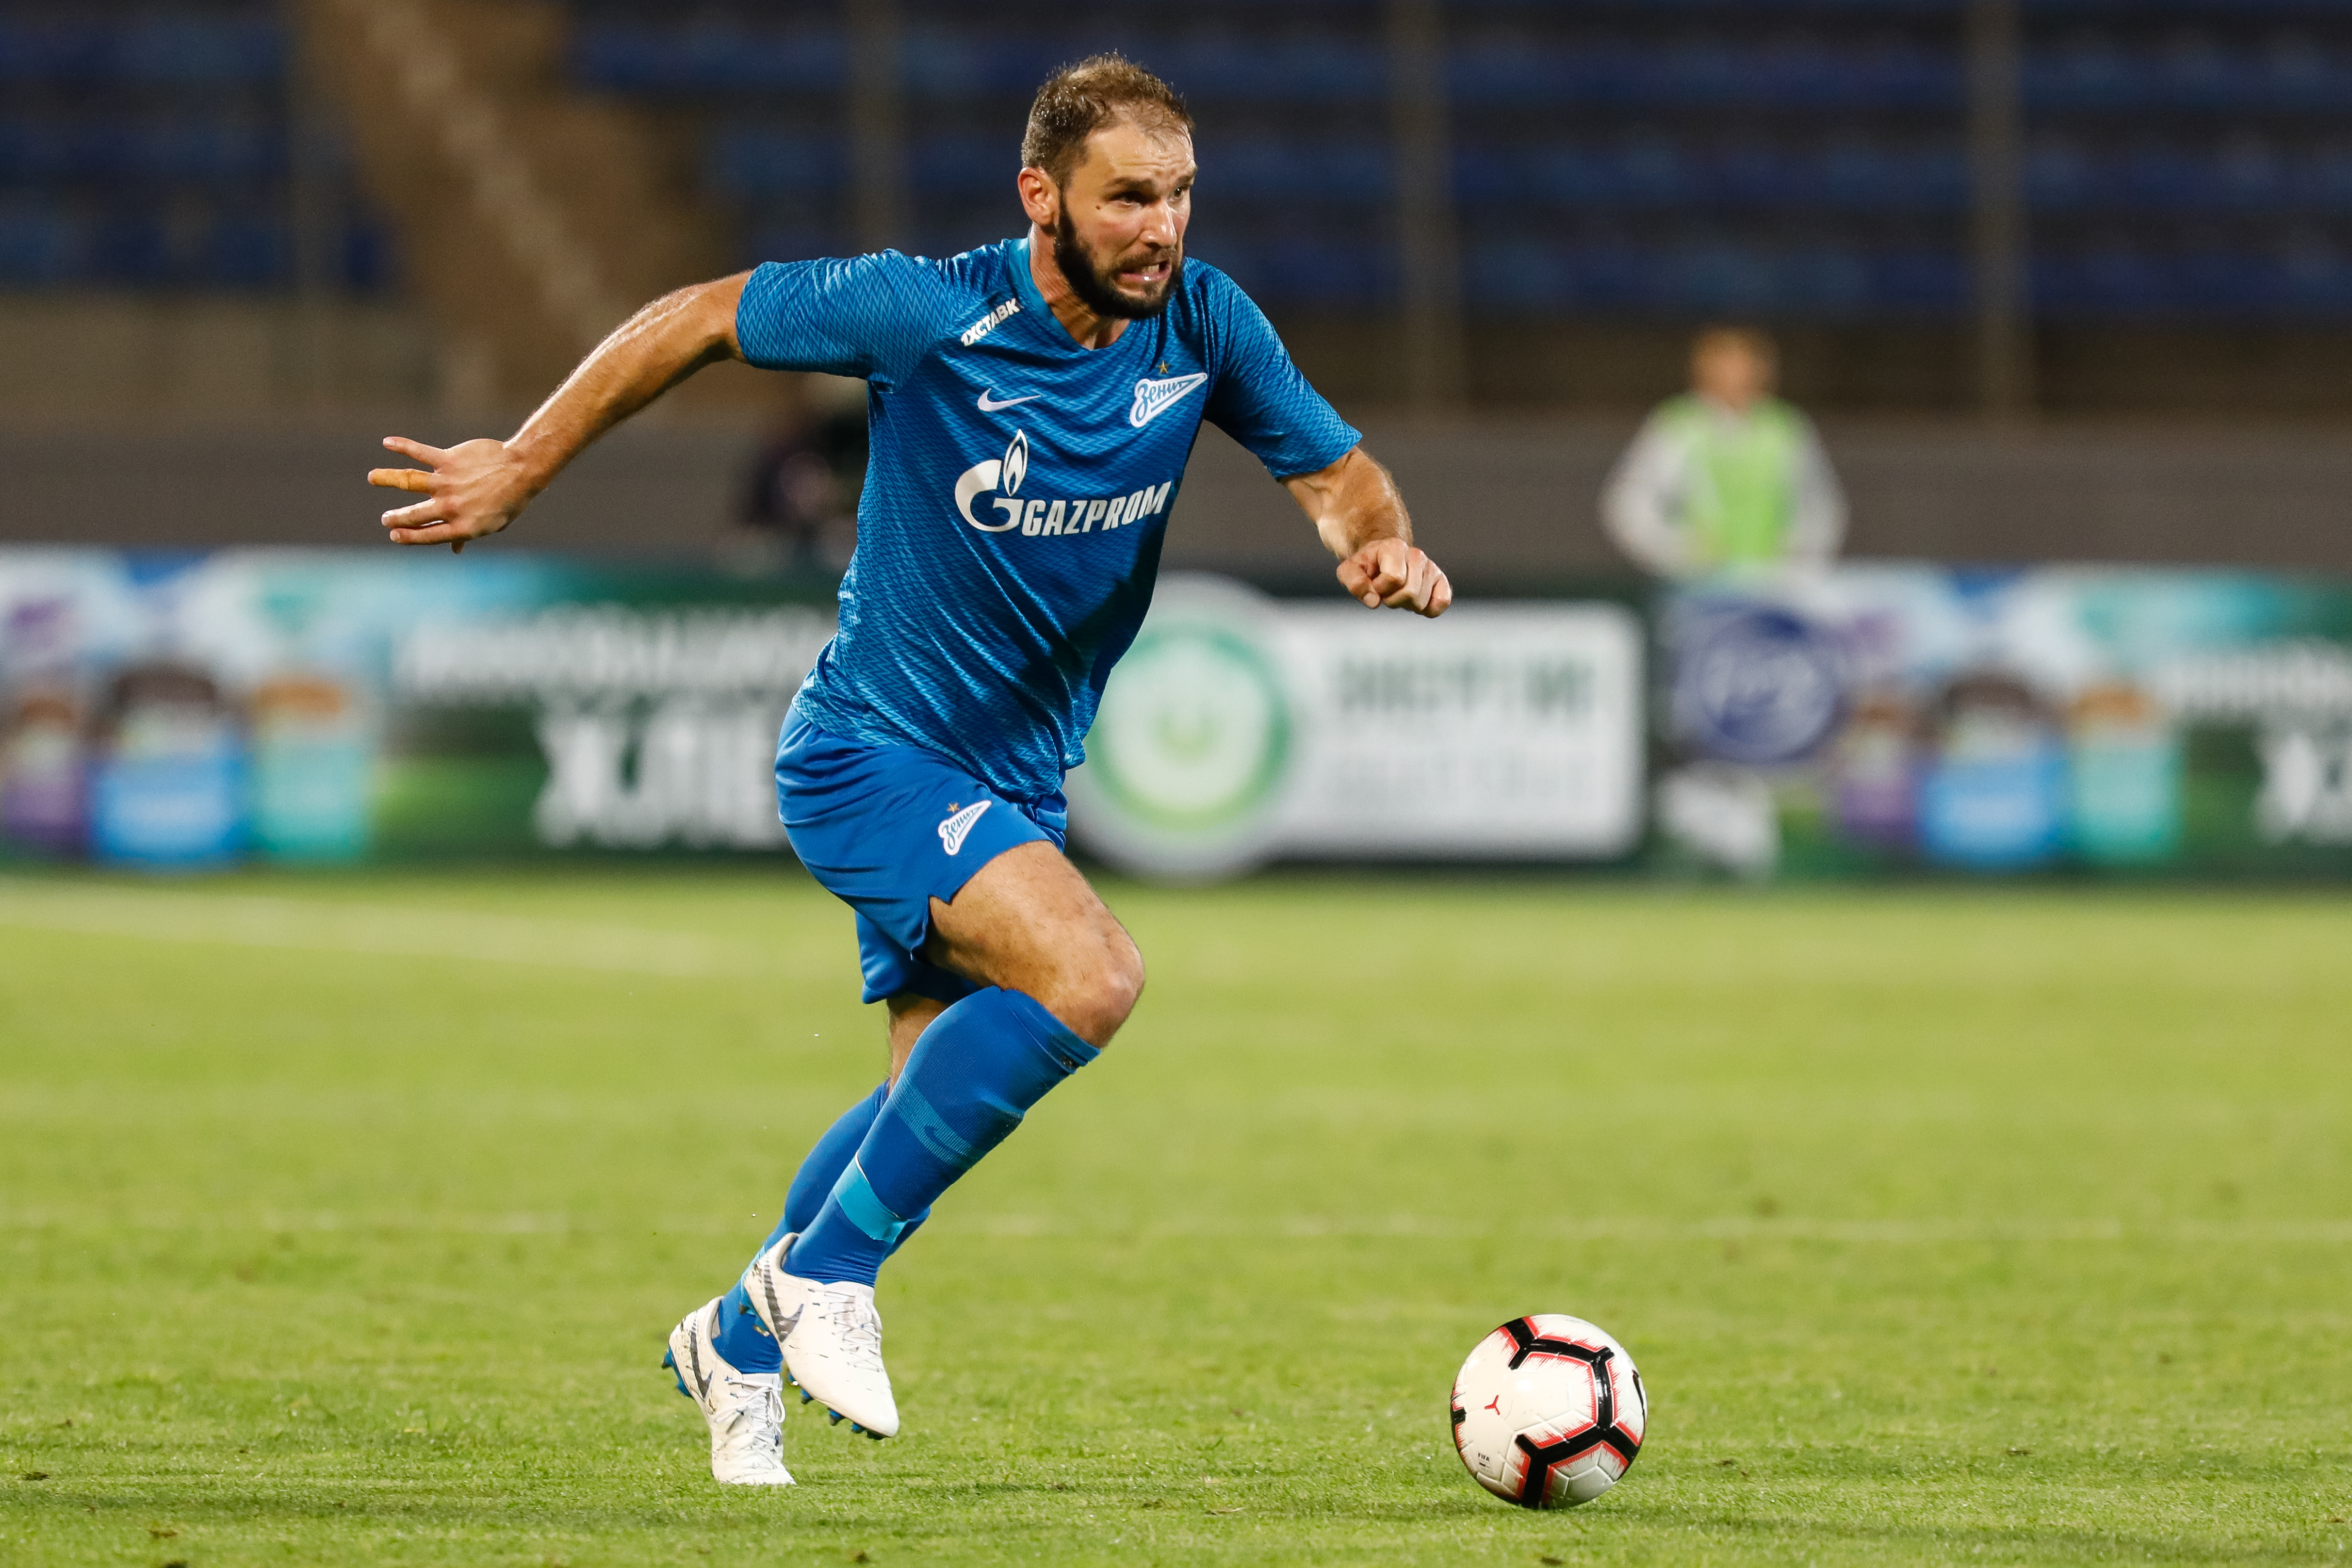 Ivanovic now plays for Zenit. Image: PA Images